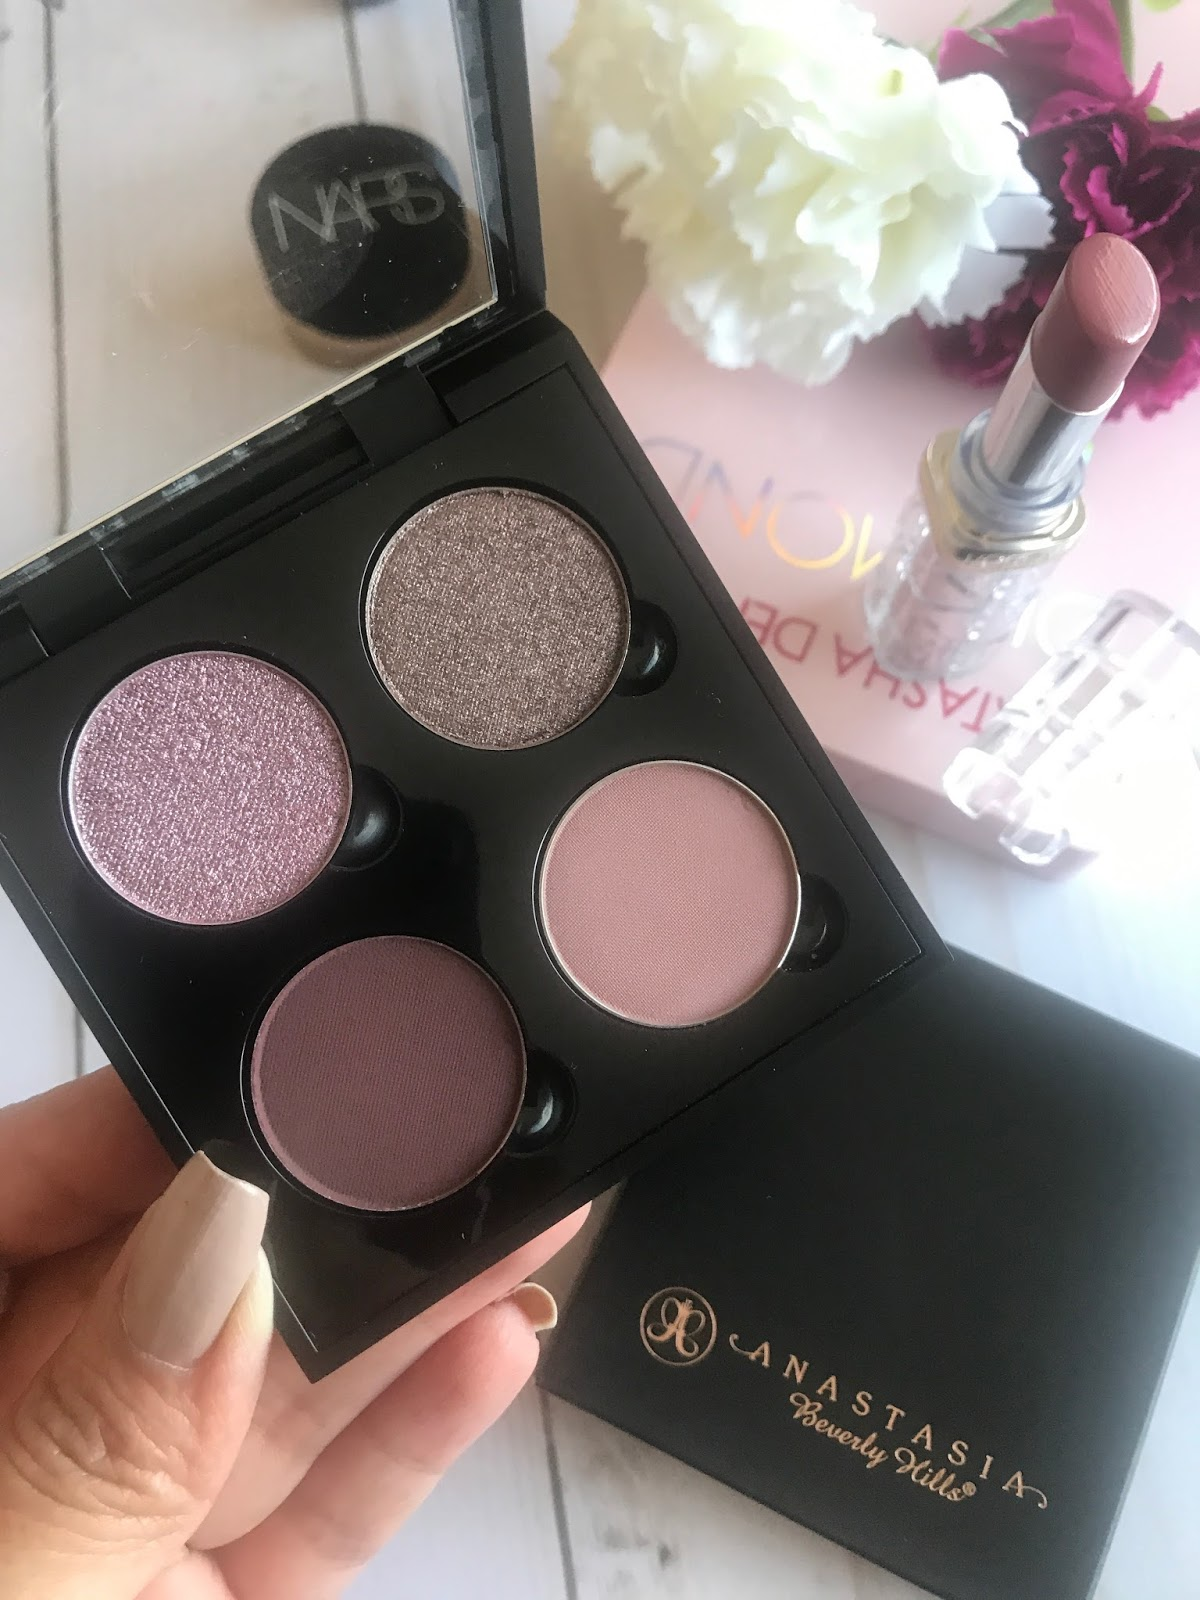 Single Shadows Are 12 A Piece But When You Purchase Four Its Only 40 For The Quad Can Find This Same Deal At All Sites Selling ABH Singles